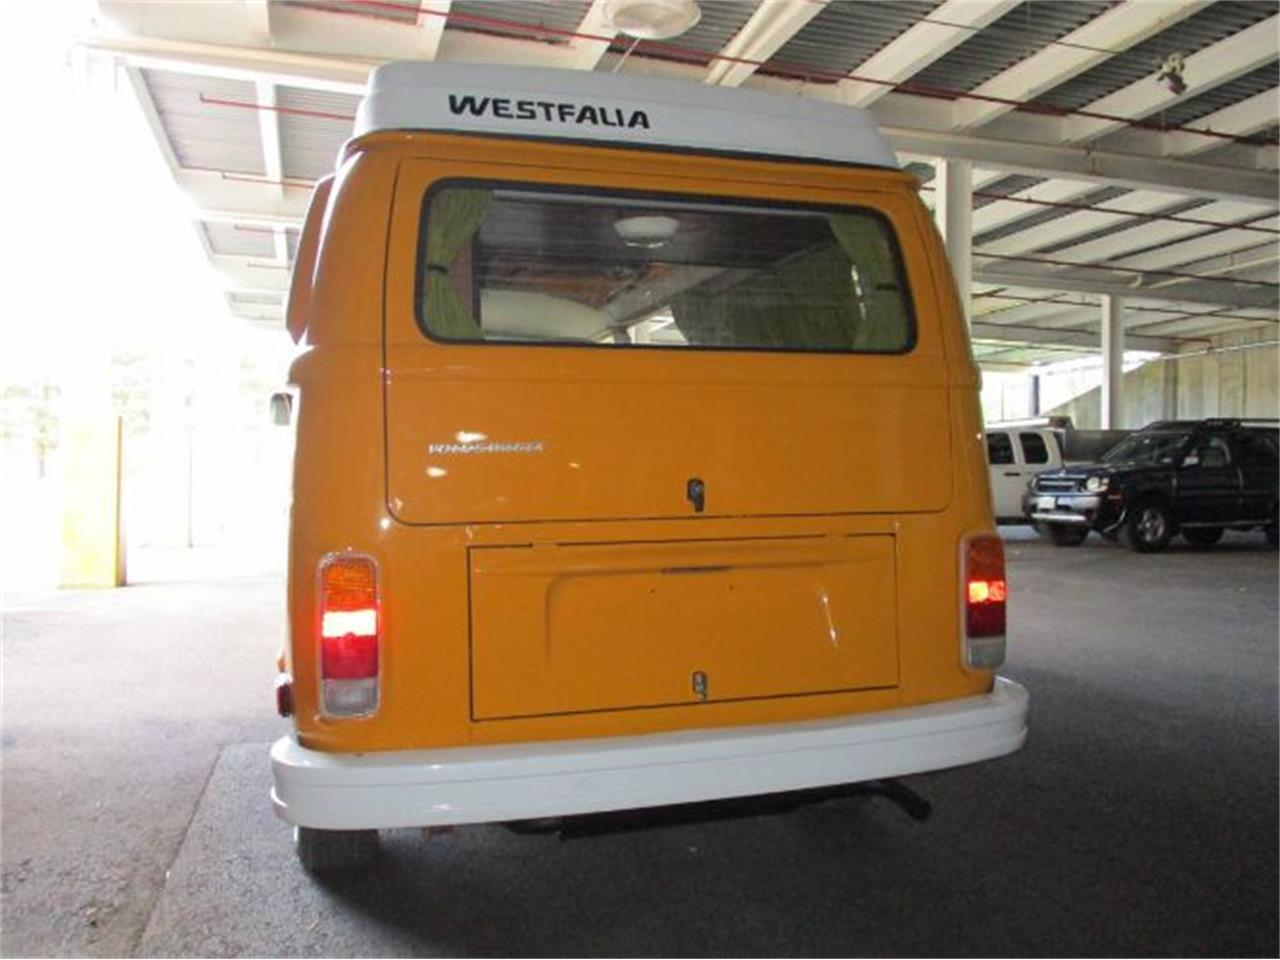 Large Picture of 1976 Volkswagen Westfalia Camper located in Michigan - $35,495.00 Offered by Classic Car Deals - Q56J